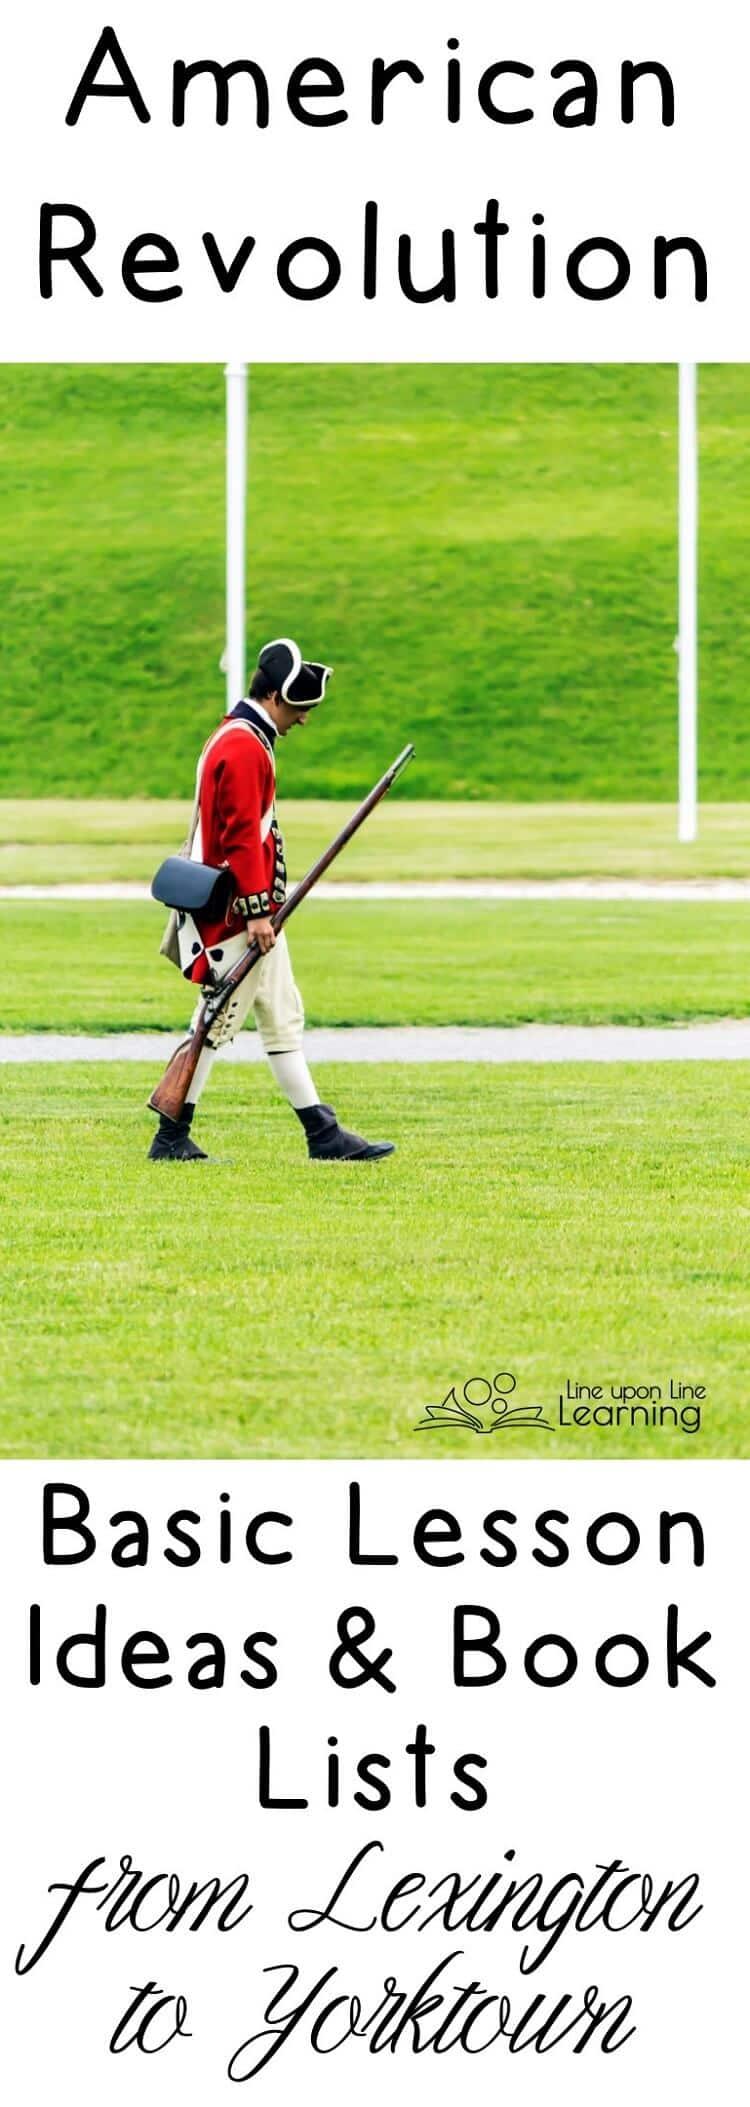 The American Revolutionary War began with the anonymous shots at Lexington Green and finally ended at Yorktown, when General Cornwallis surrendered for the British.